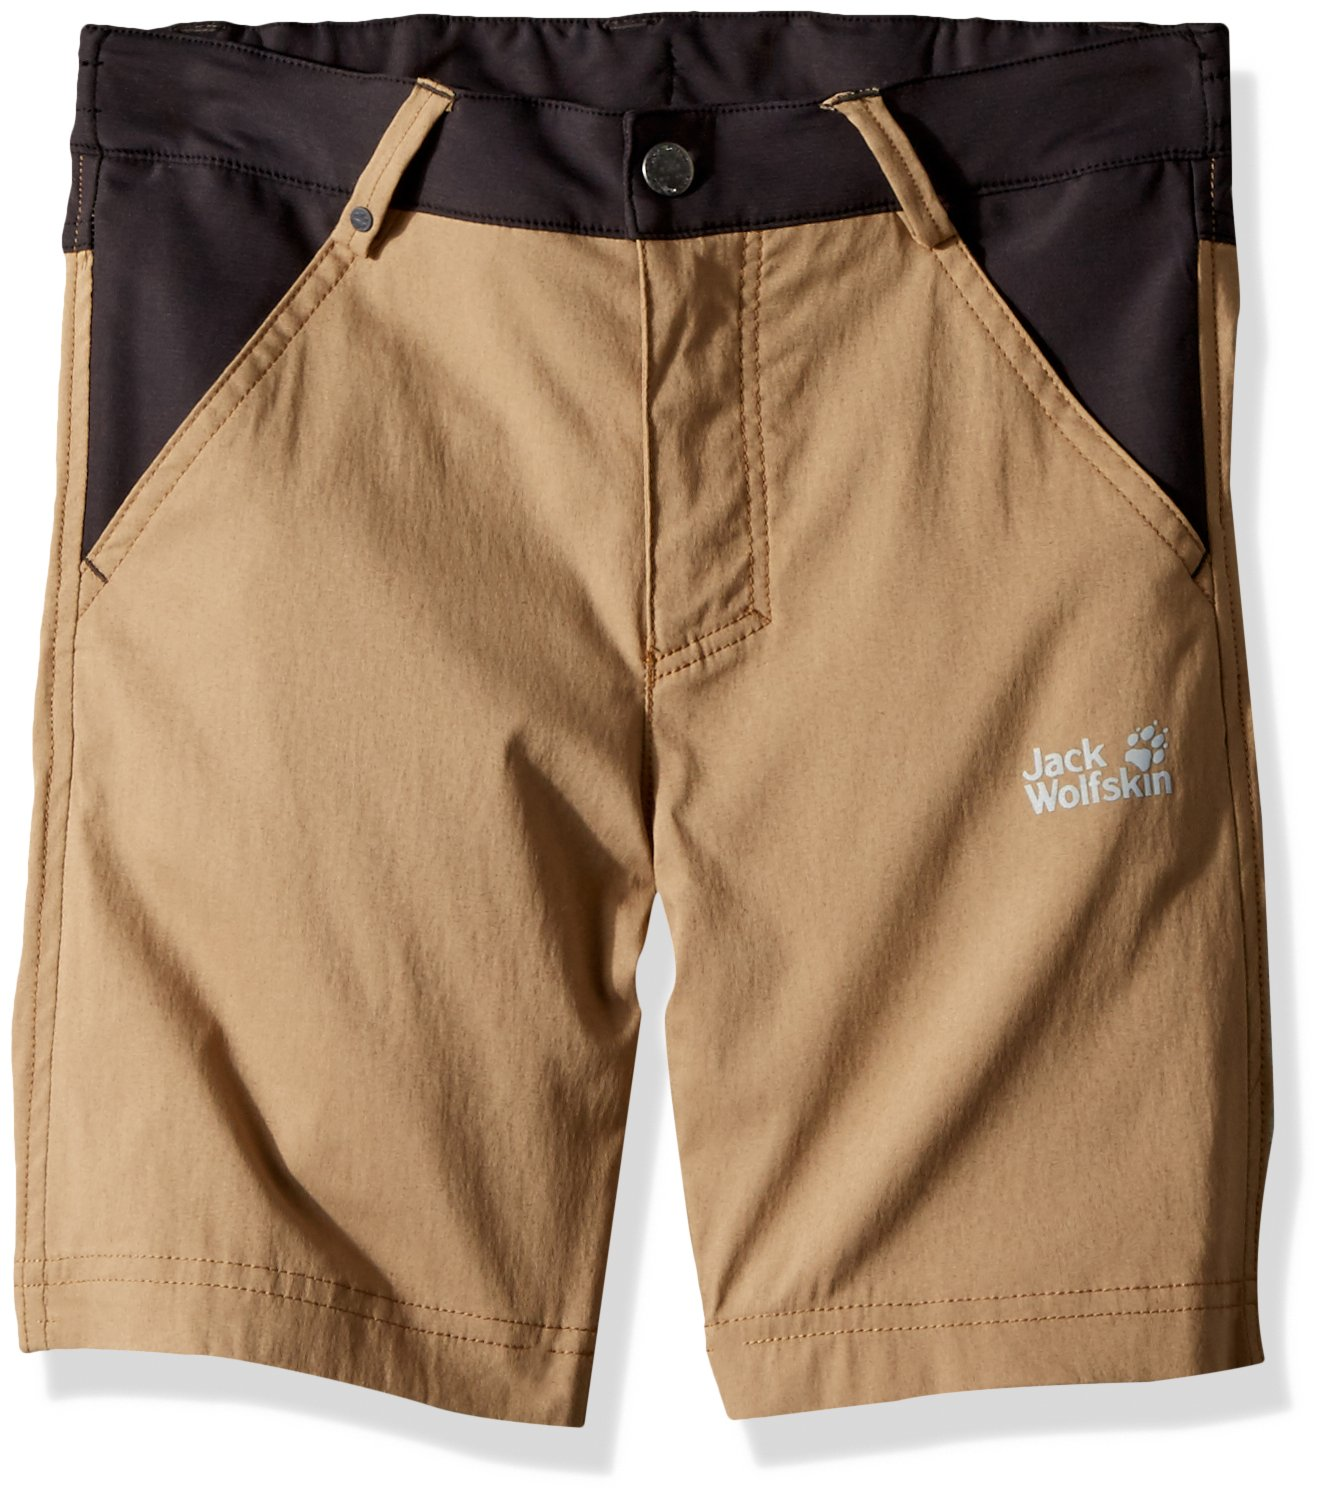 Jack Wolfskin Dillon Flex Shorts, 104 (3-4 Years Old), Sand Dune by Jack Wolfskin